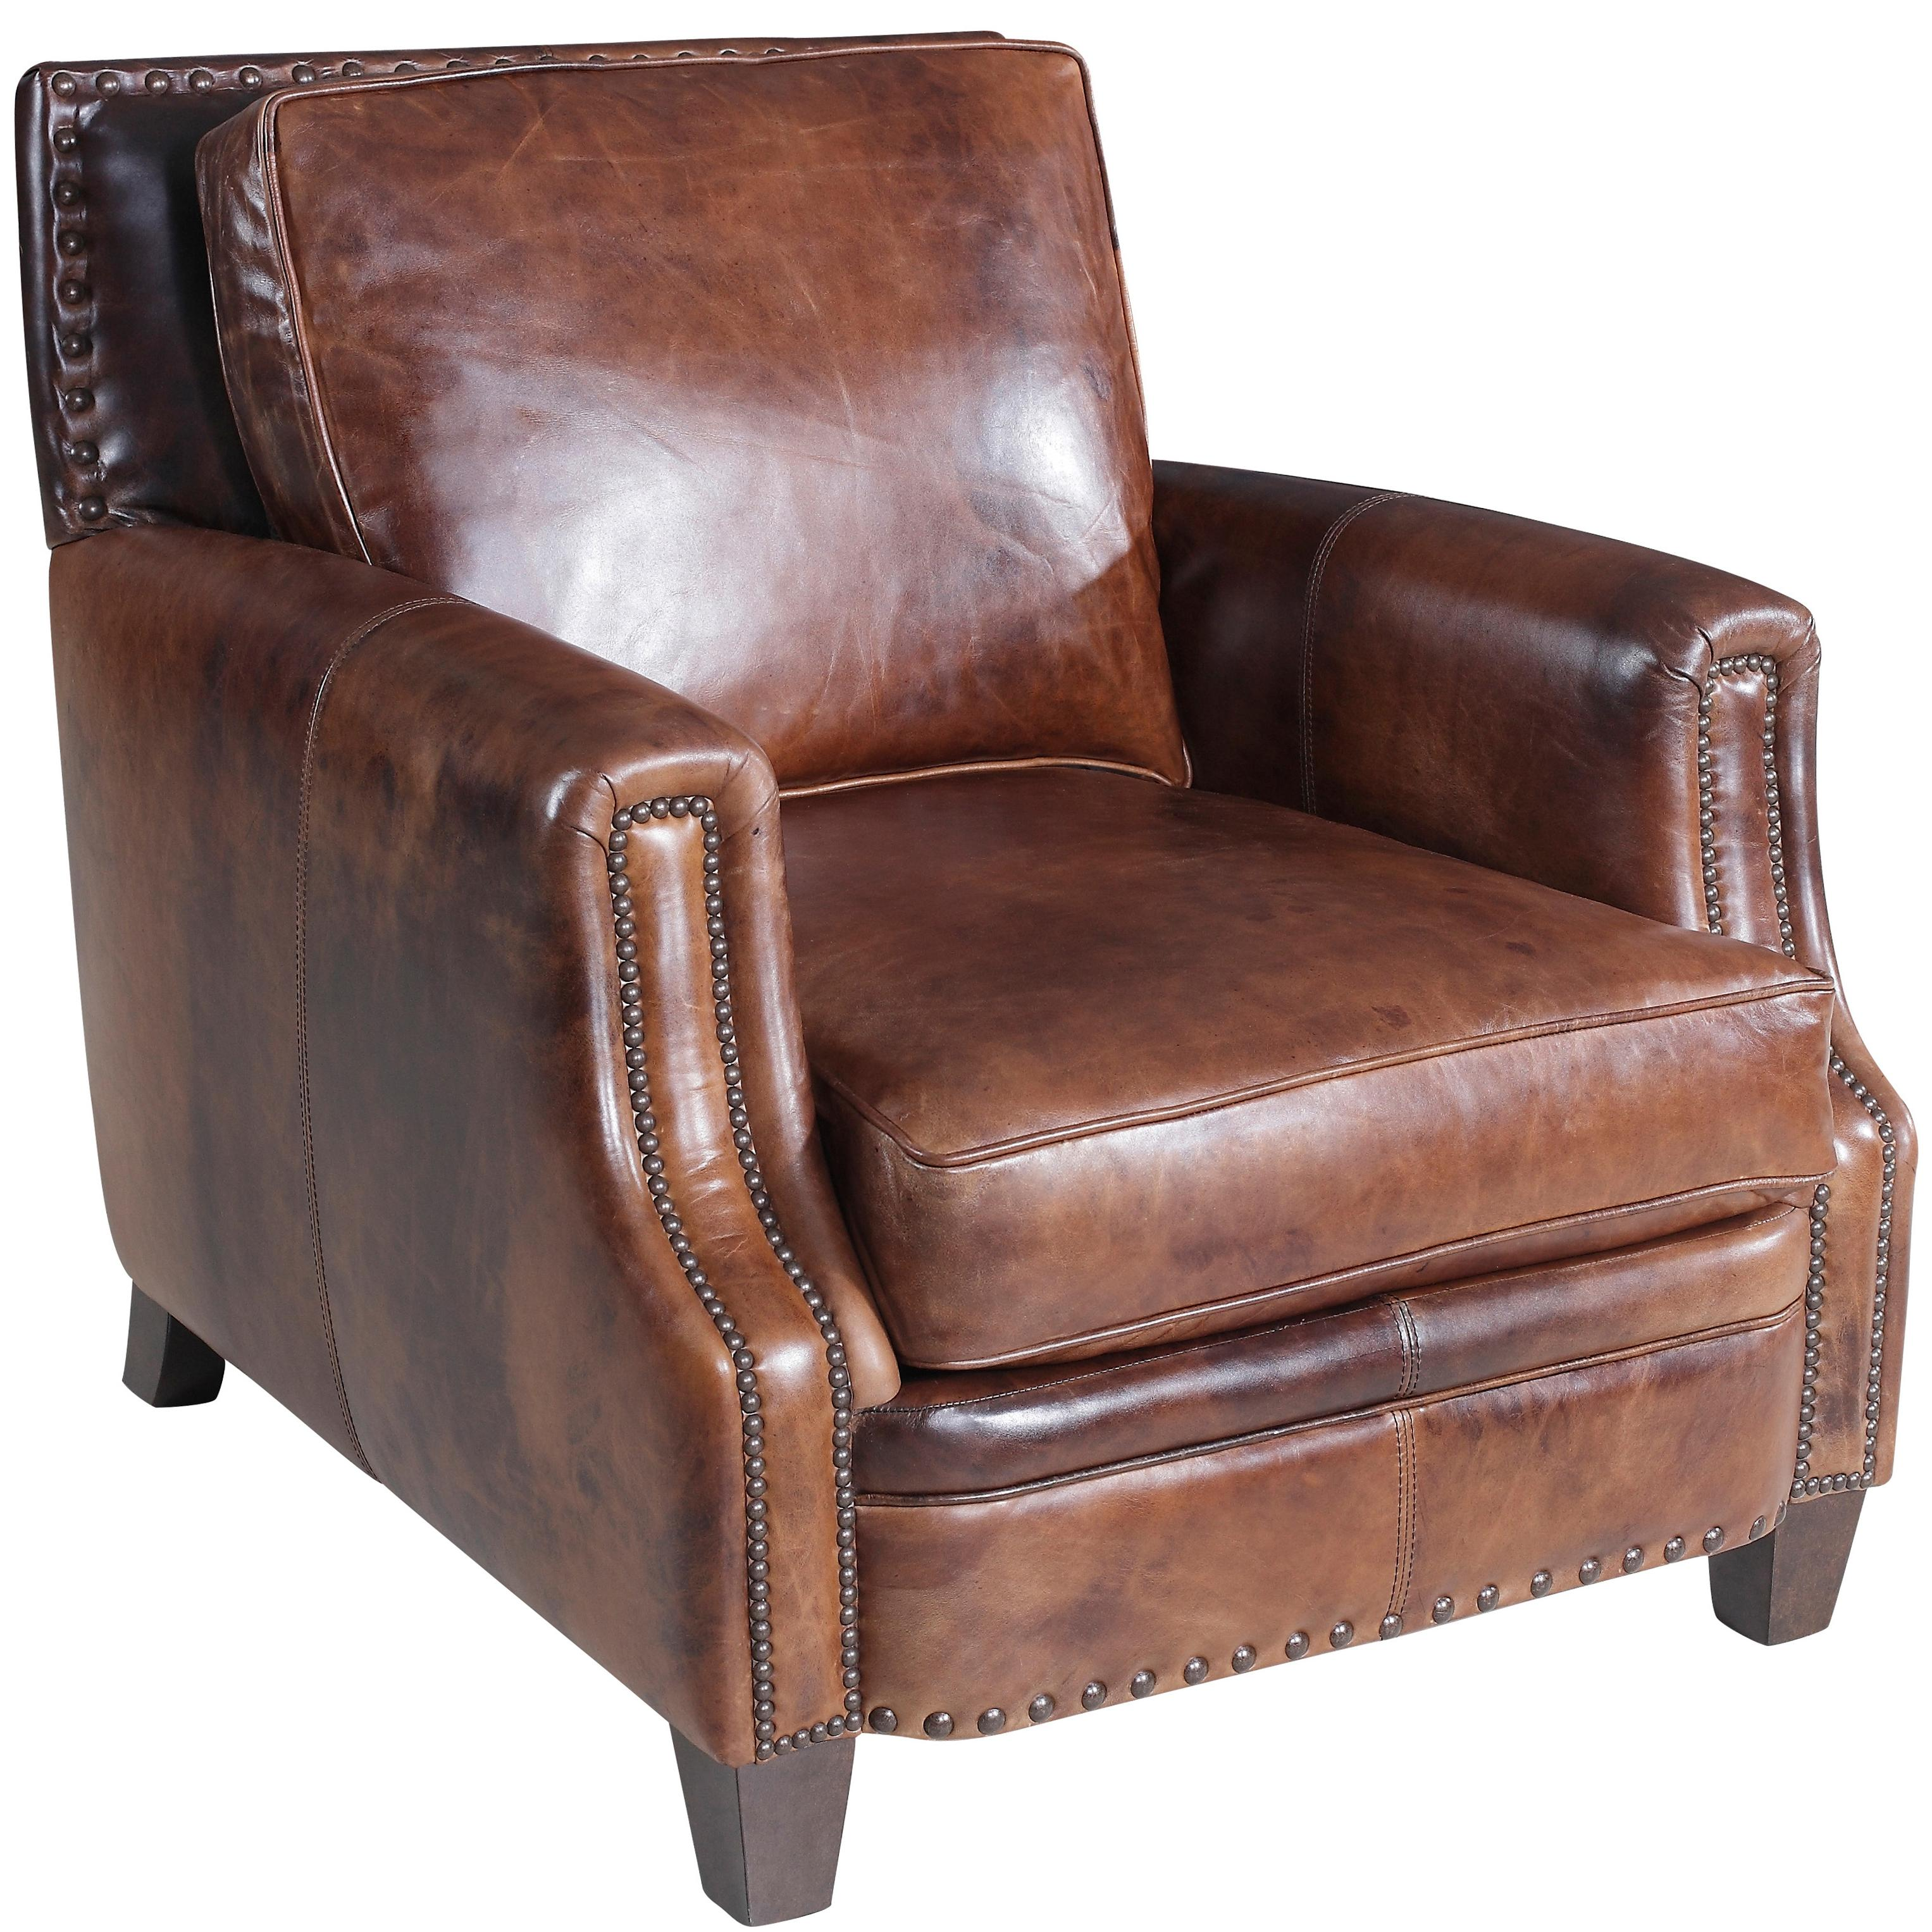 Hooker Furniture SS311 Traditional Chair - Item Number: SS311-01-085